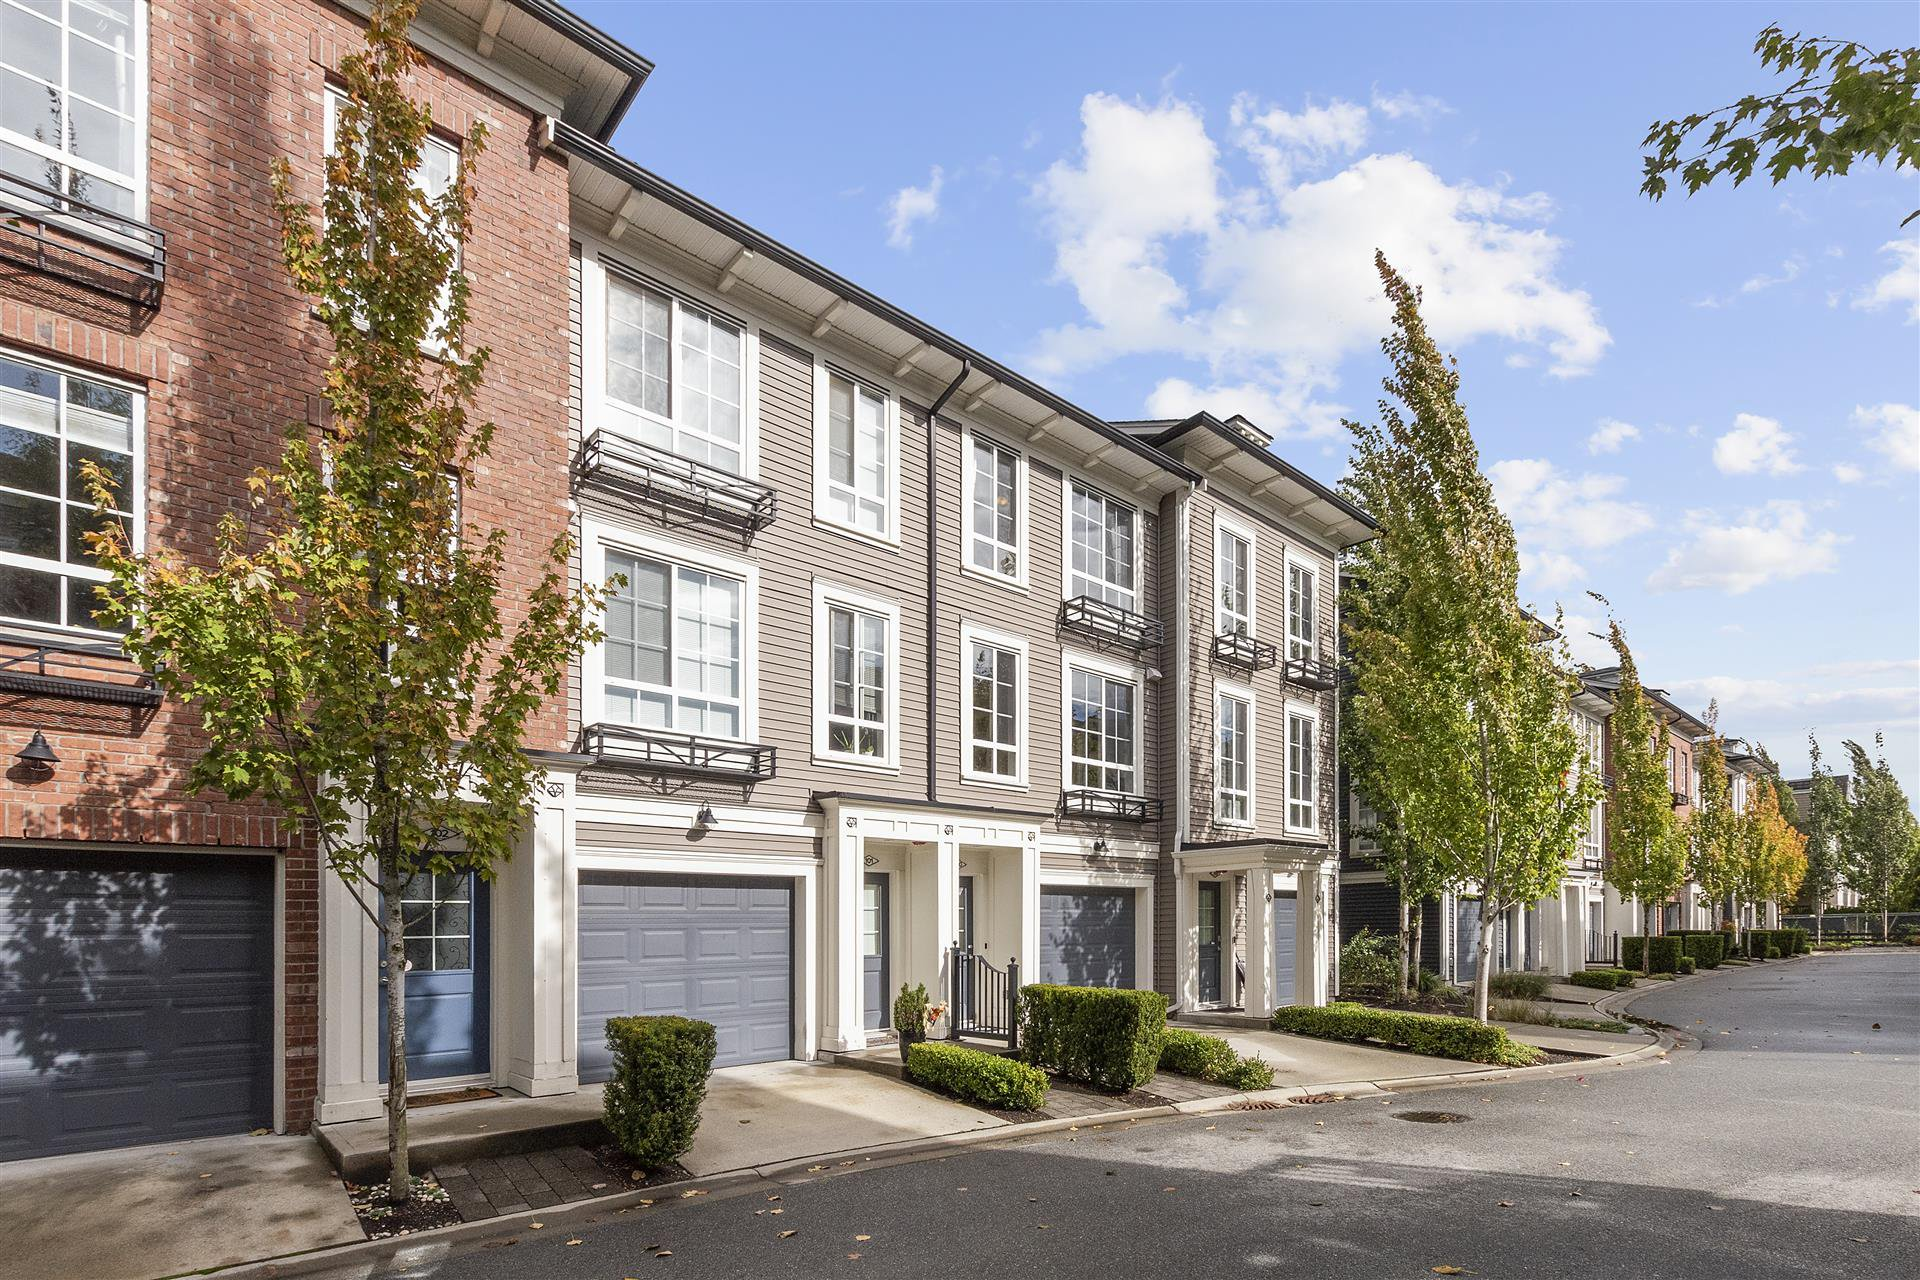 Main Photo: 100 2428 Nile Gate in Port Coquitlam: Riverwood Townhouse for sale : MLS®# R2507859